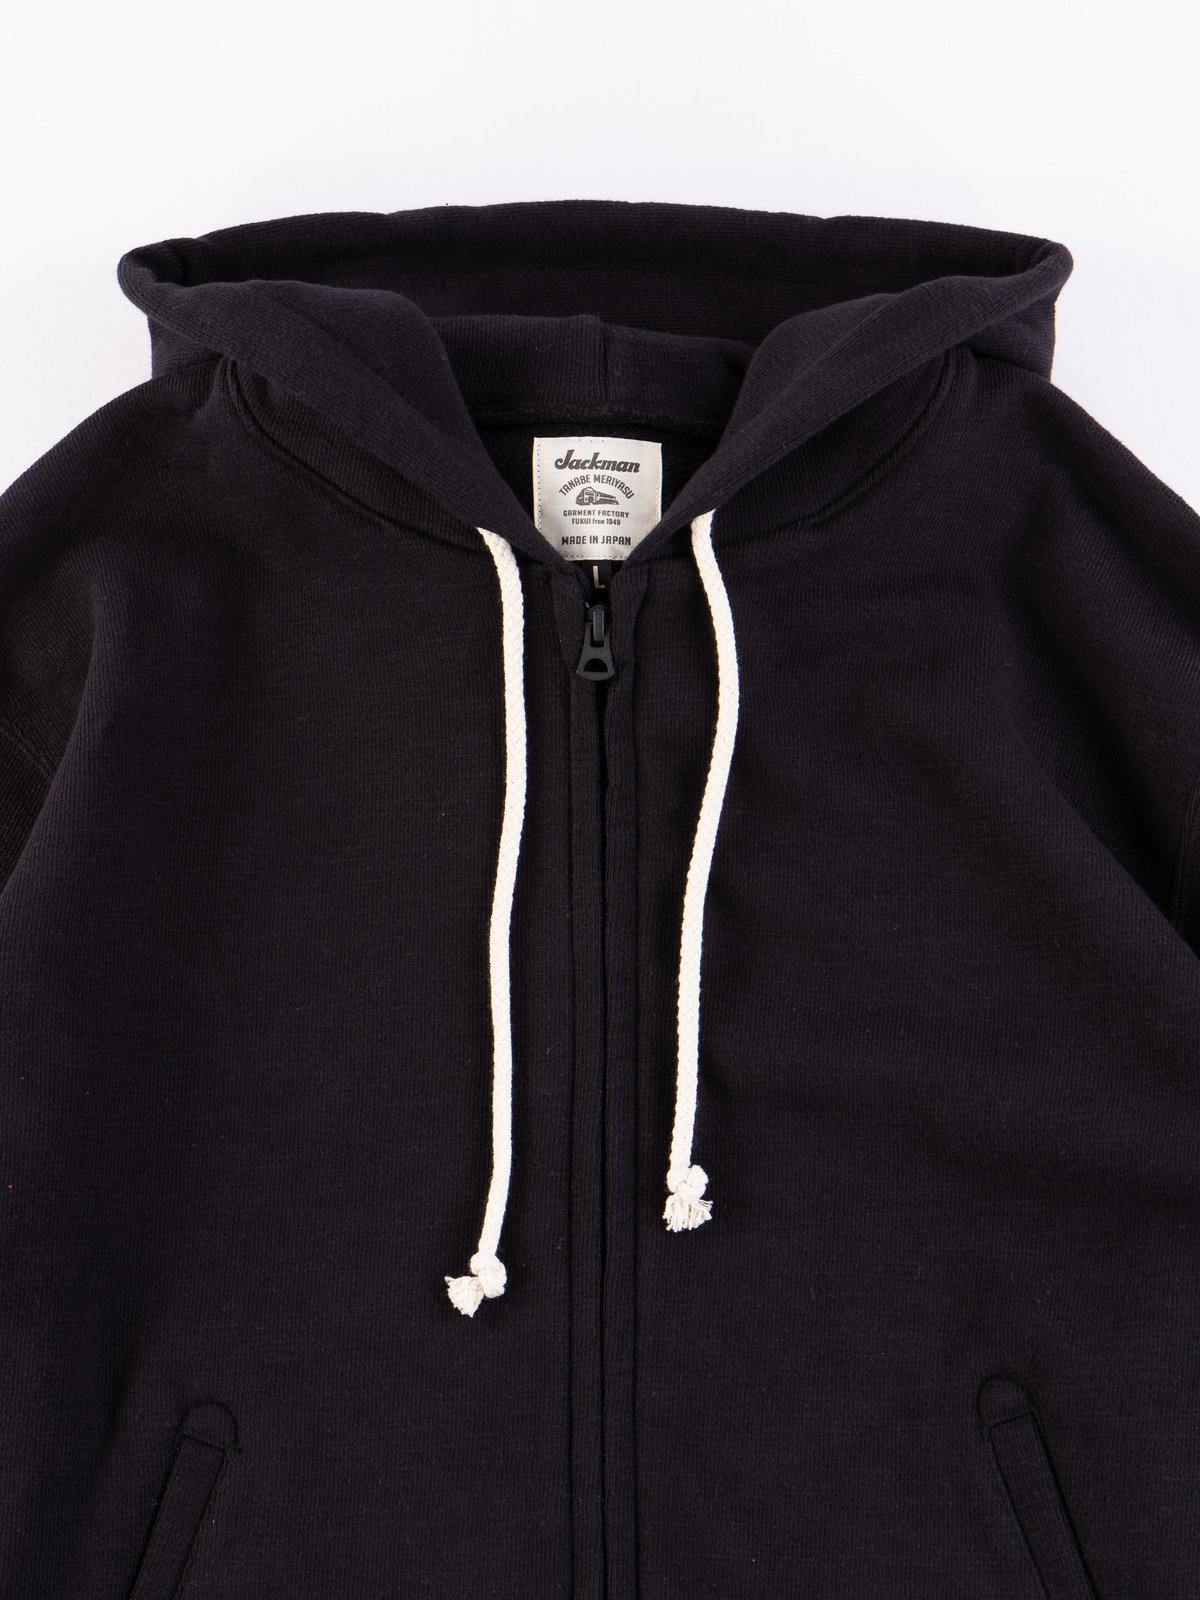 Black GG Full Zip Sweatshirt - Image 3